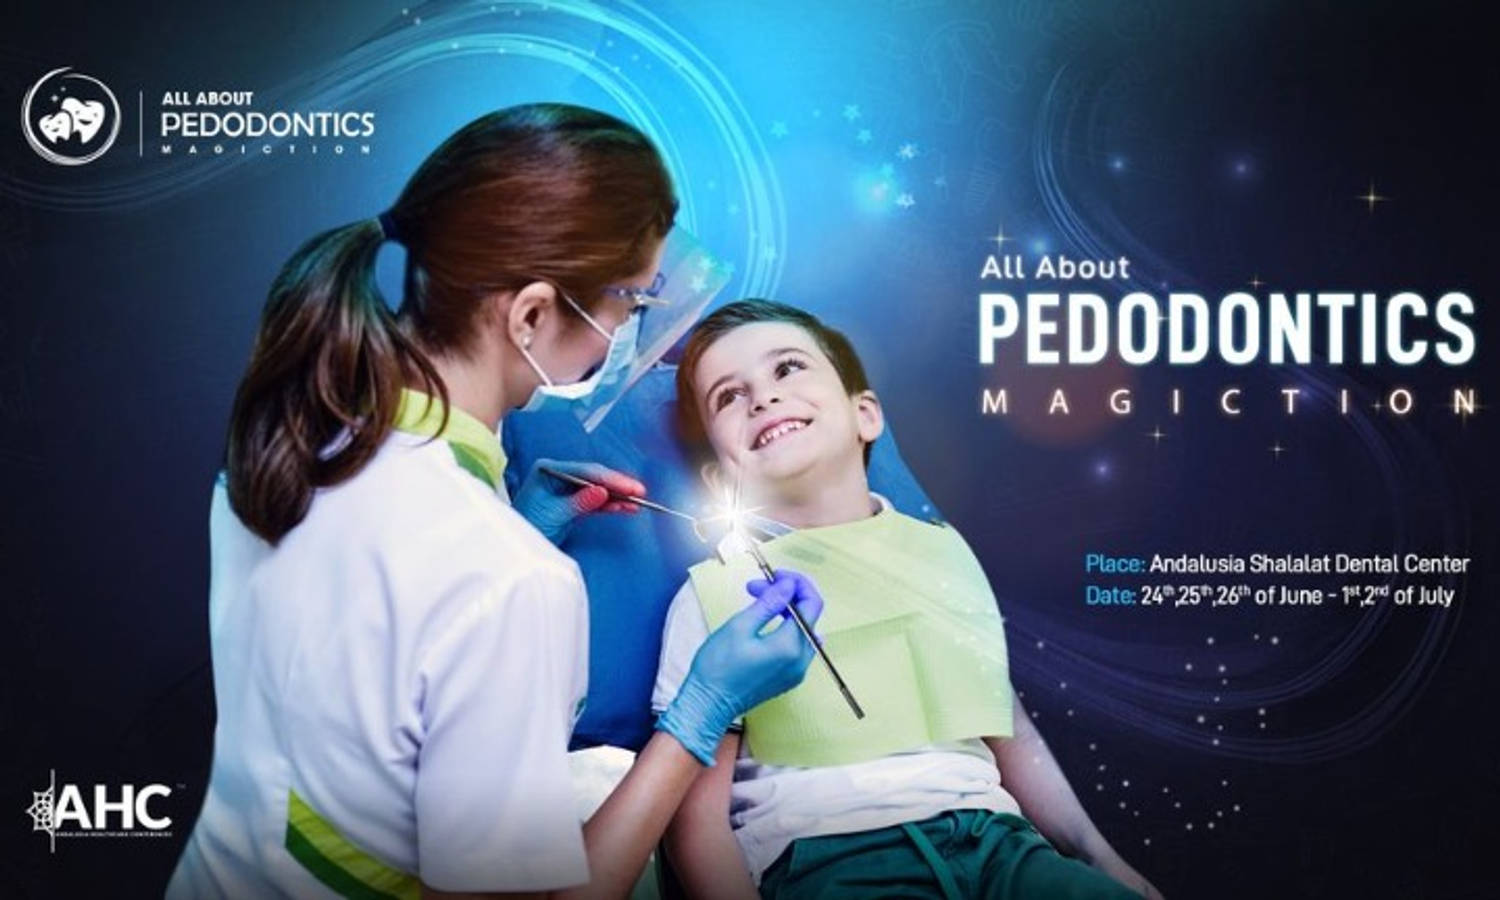 All About Pedodontics Magiction Course